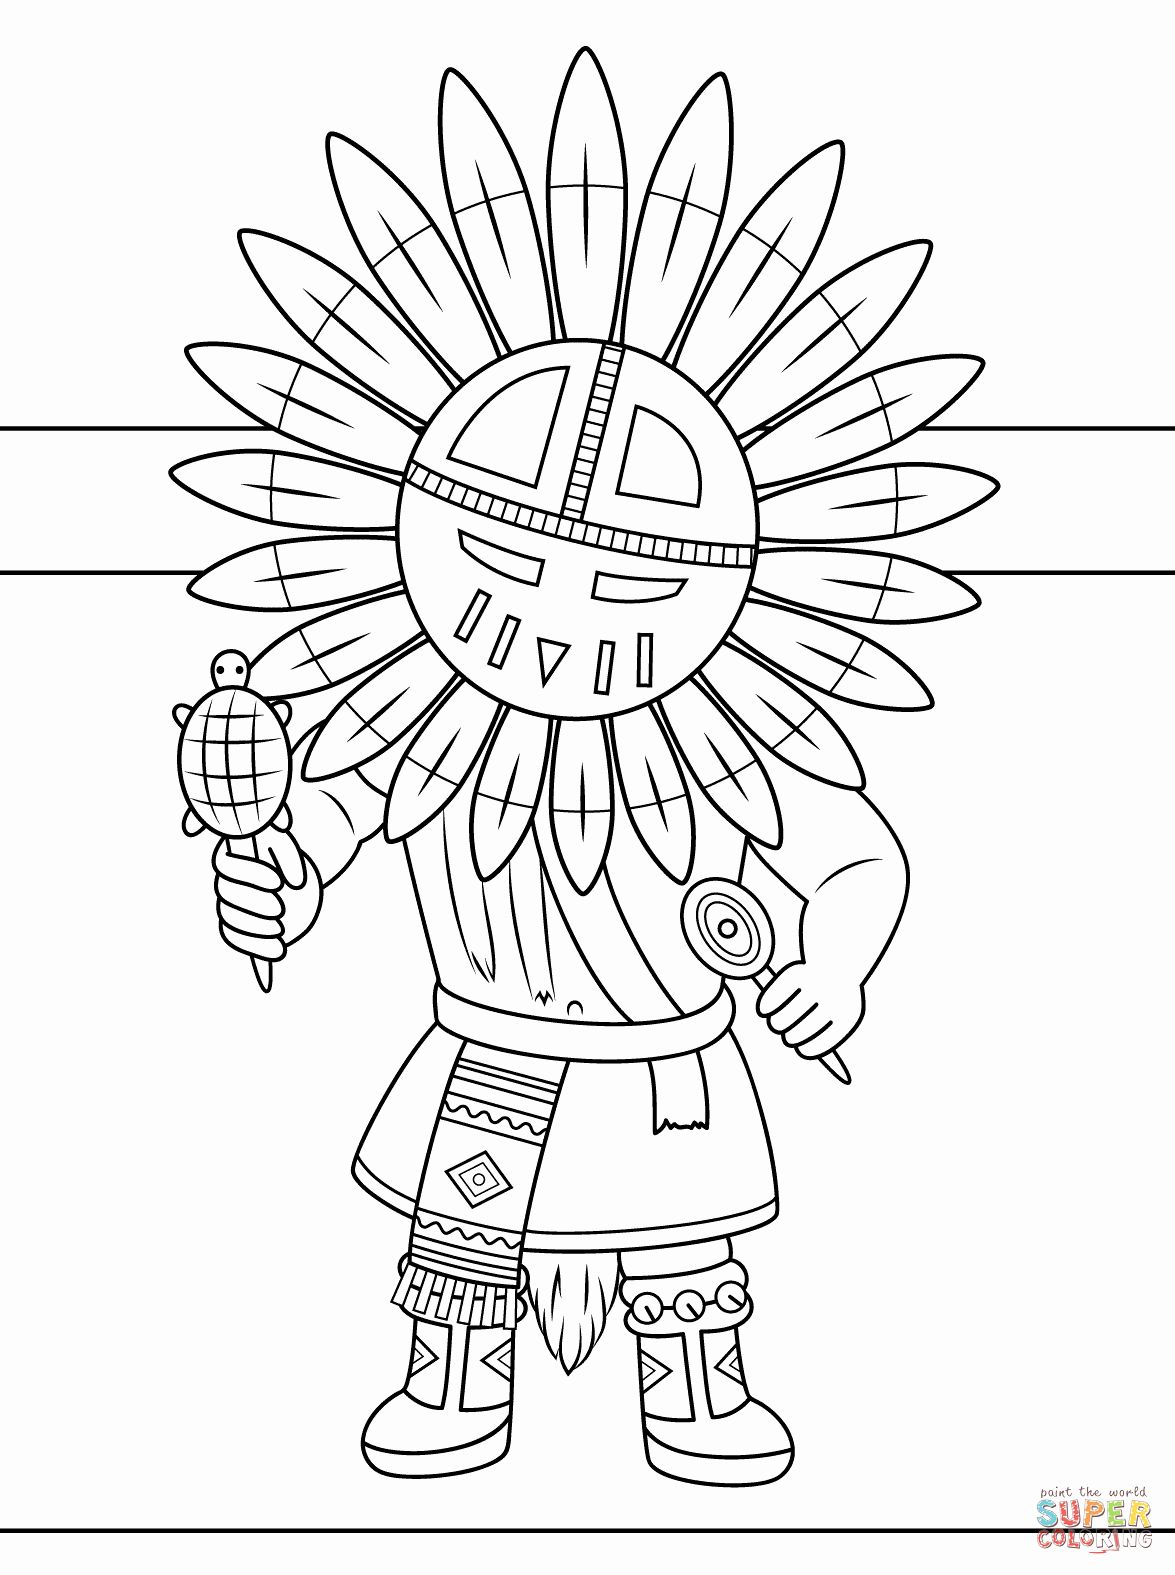 Native American Coloring Book Luxury Indian Headdress